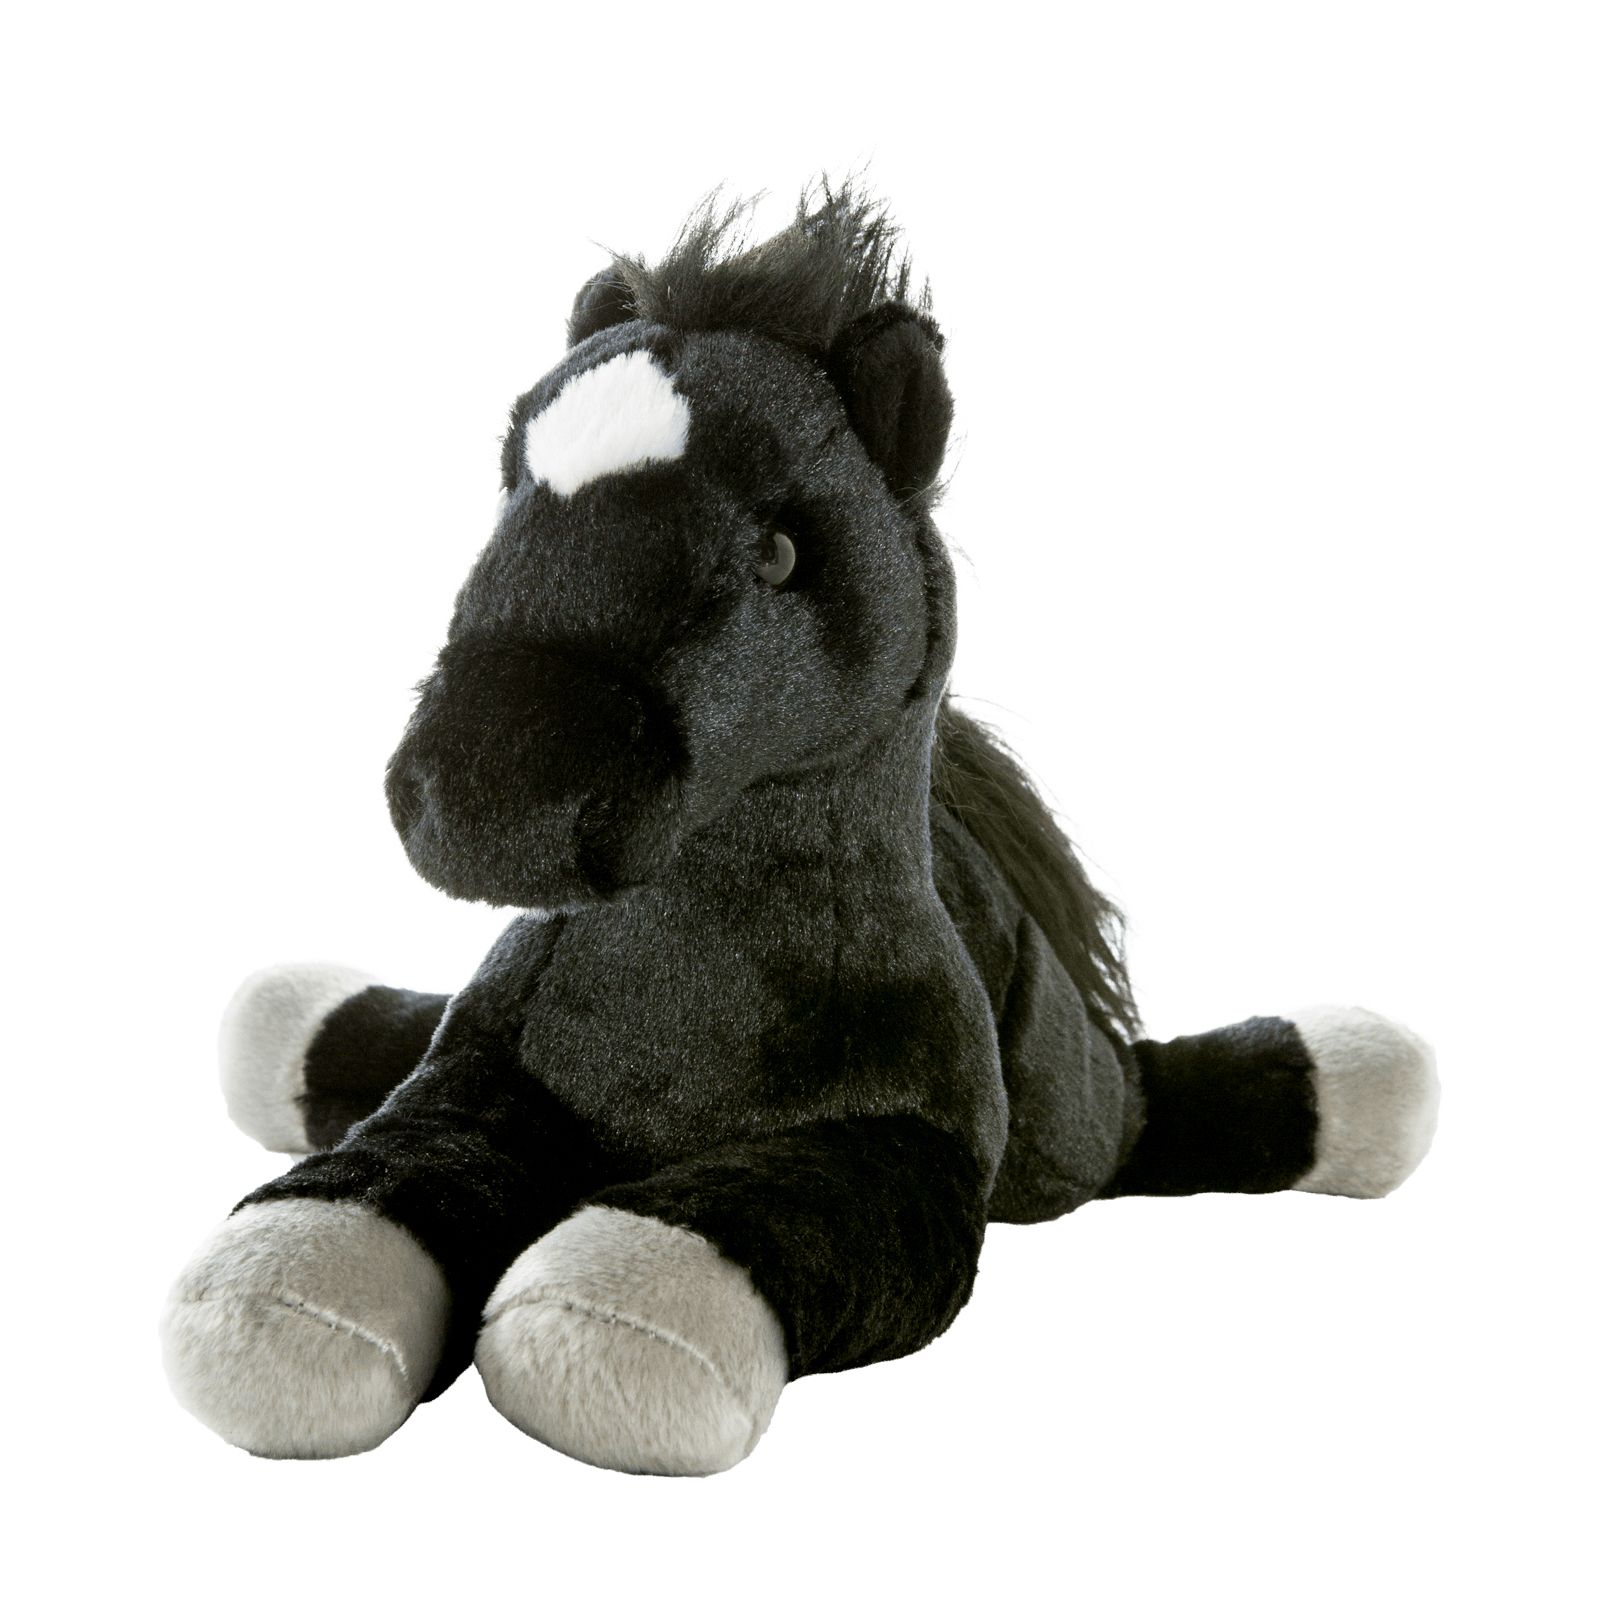 Blackjack Horse Plush Toy